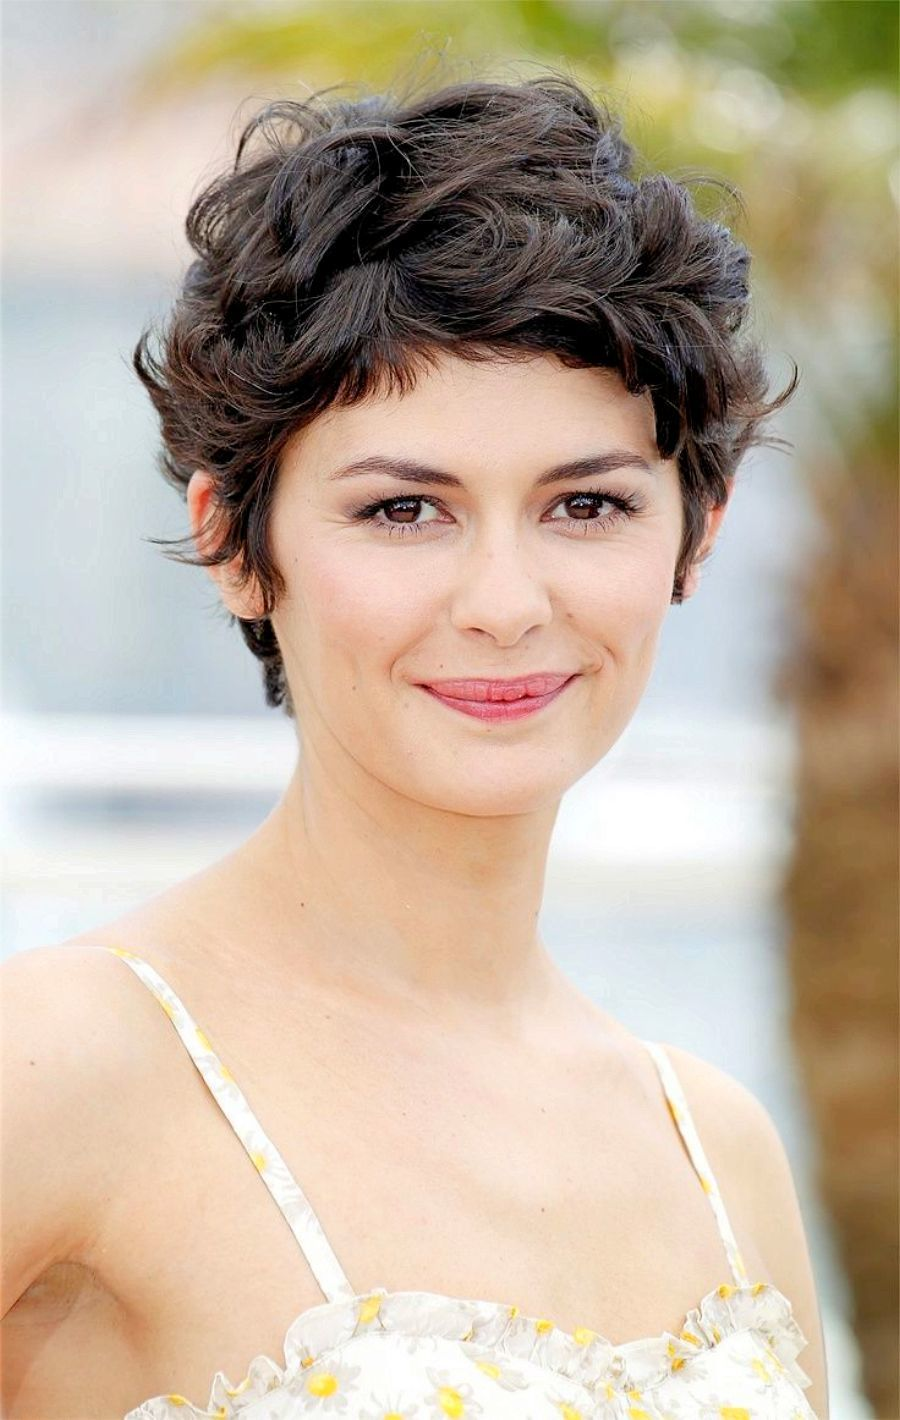 Hairstyles Super Short Curly Hair Styles Super Short Wavy Short Hairstyles Pinterest